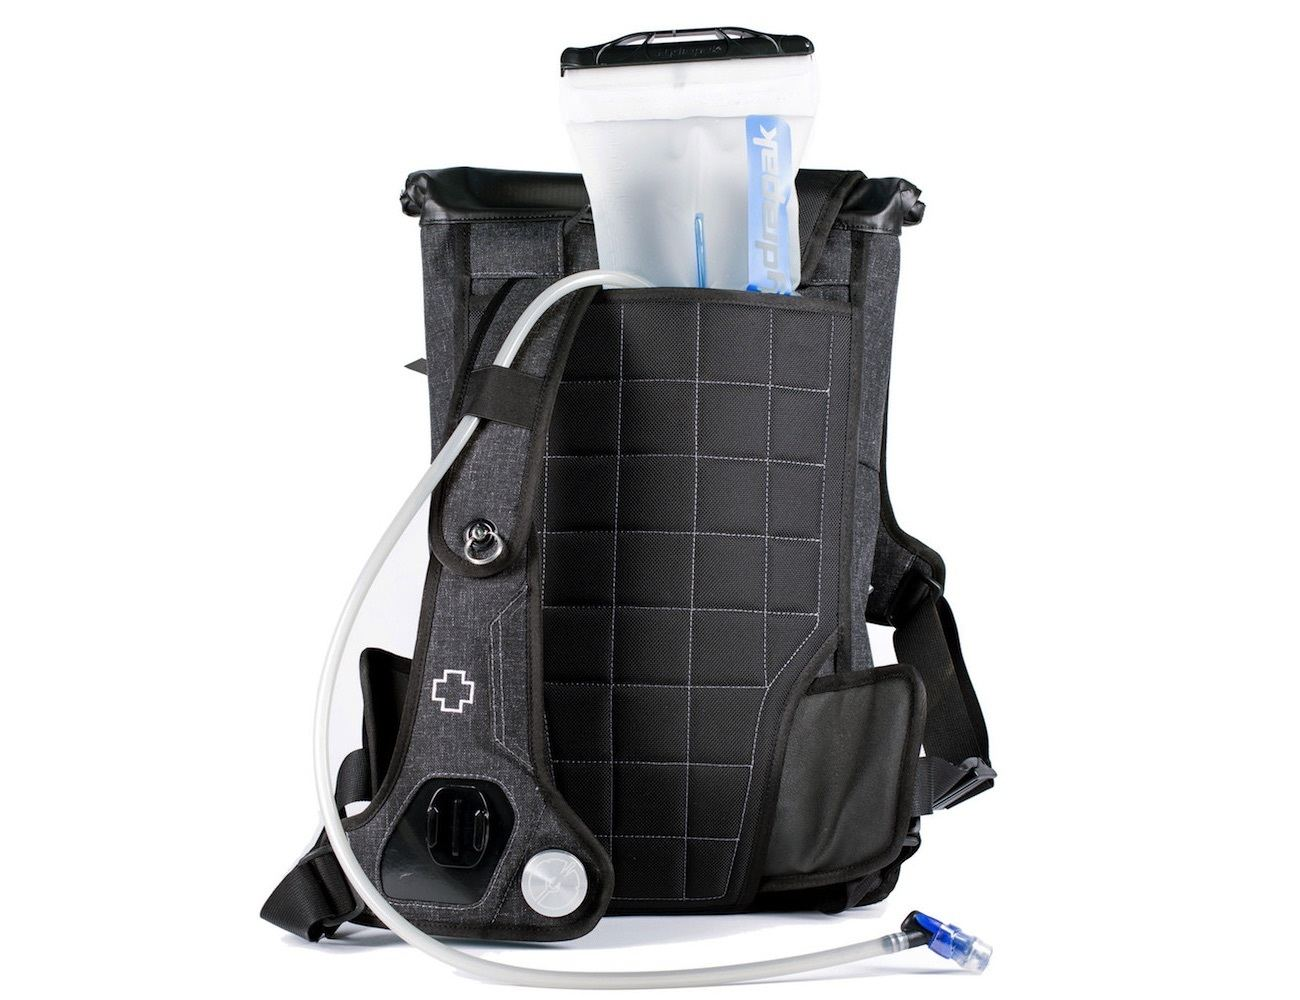 Speedway Roll-Top Backpack by Velomacchi